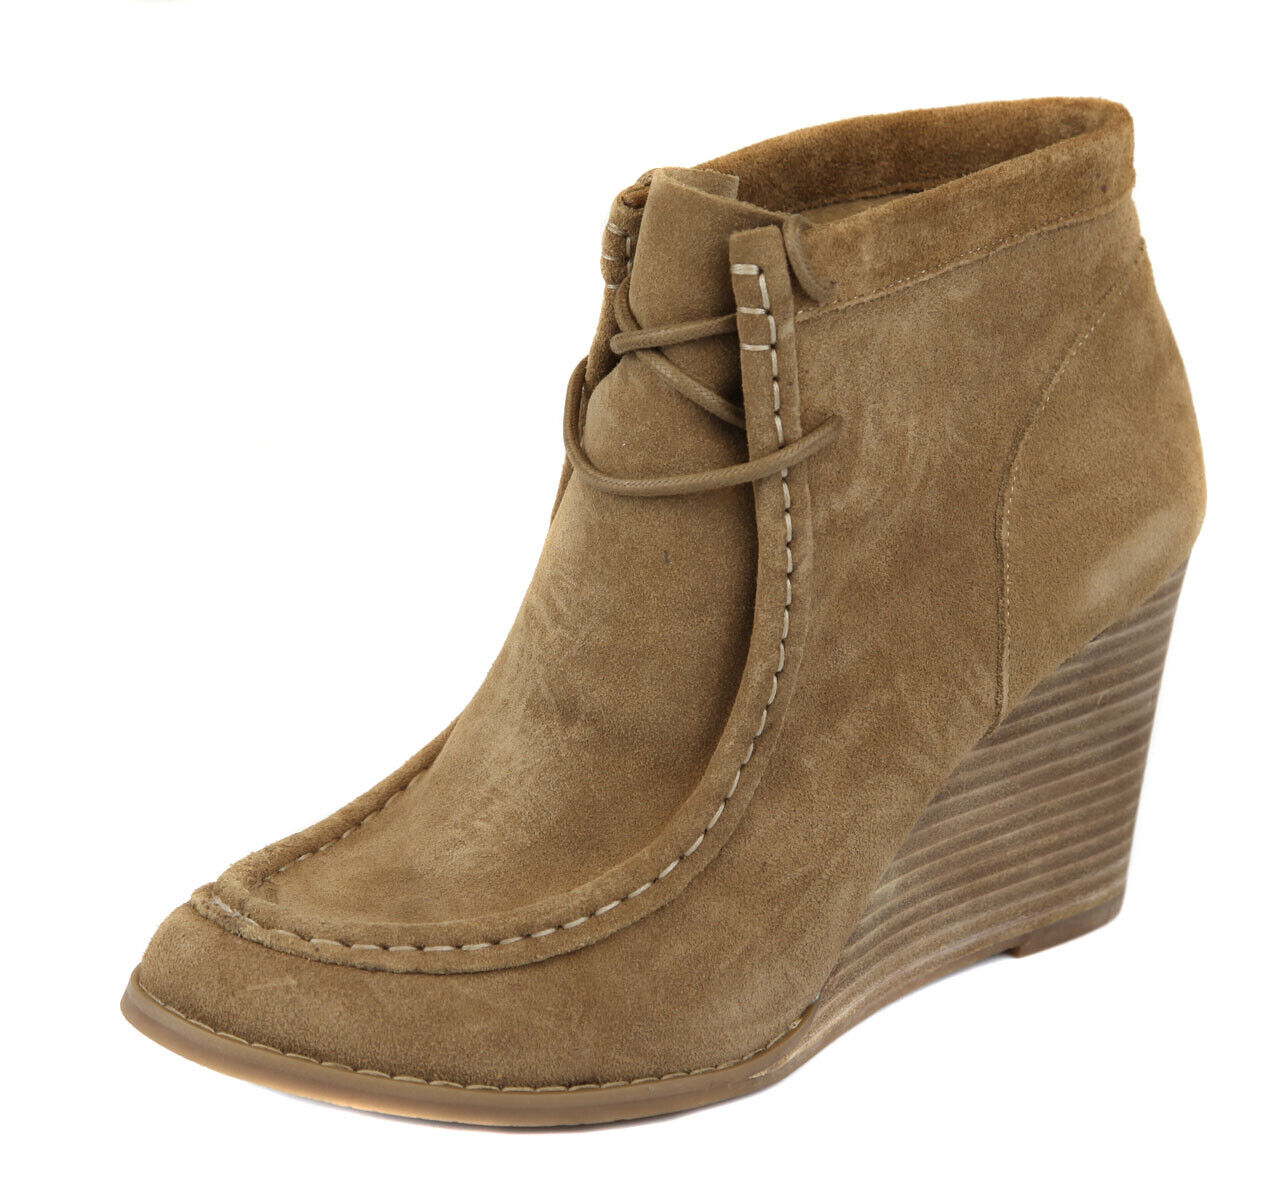 Lucky Brand Women's Sesame Tan Ysabel Lace Up Wedge Bootie shoes Ret  129 New